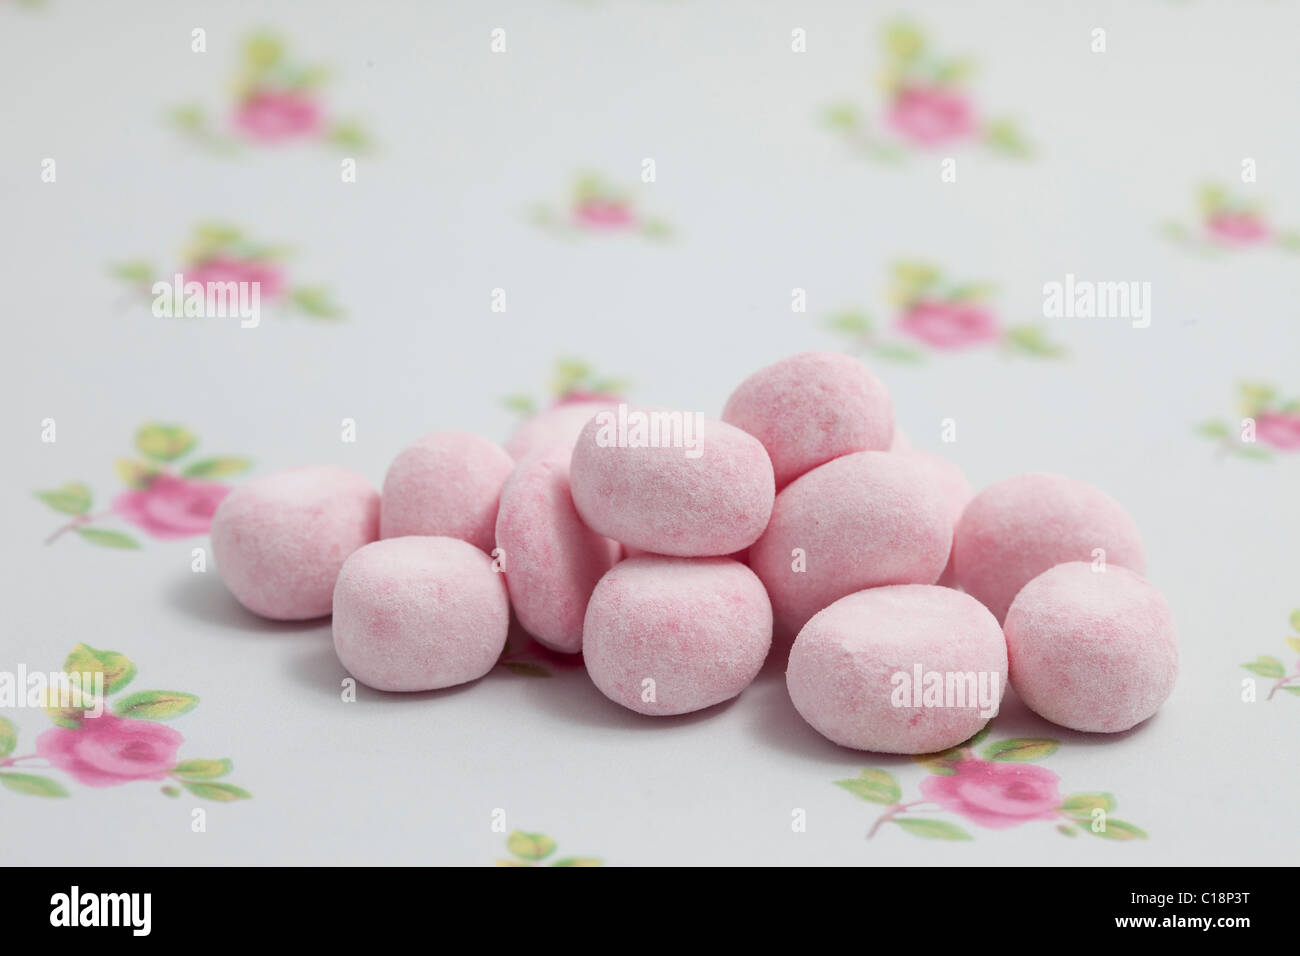 cherry bonbons sweets and candy on a paper background photographed in a studio - Stock Image